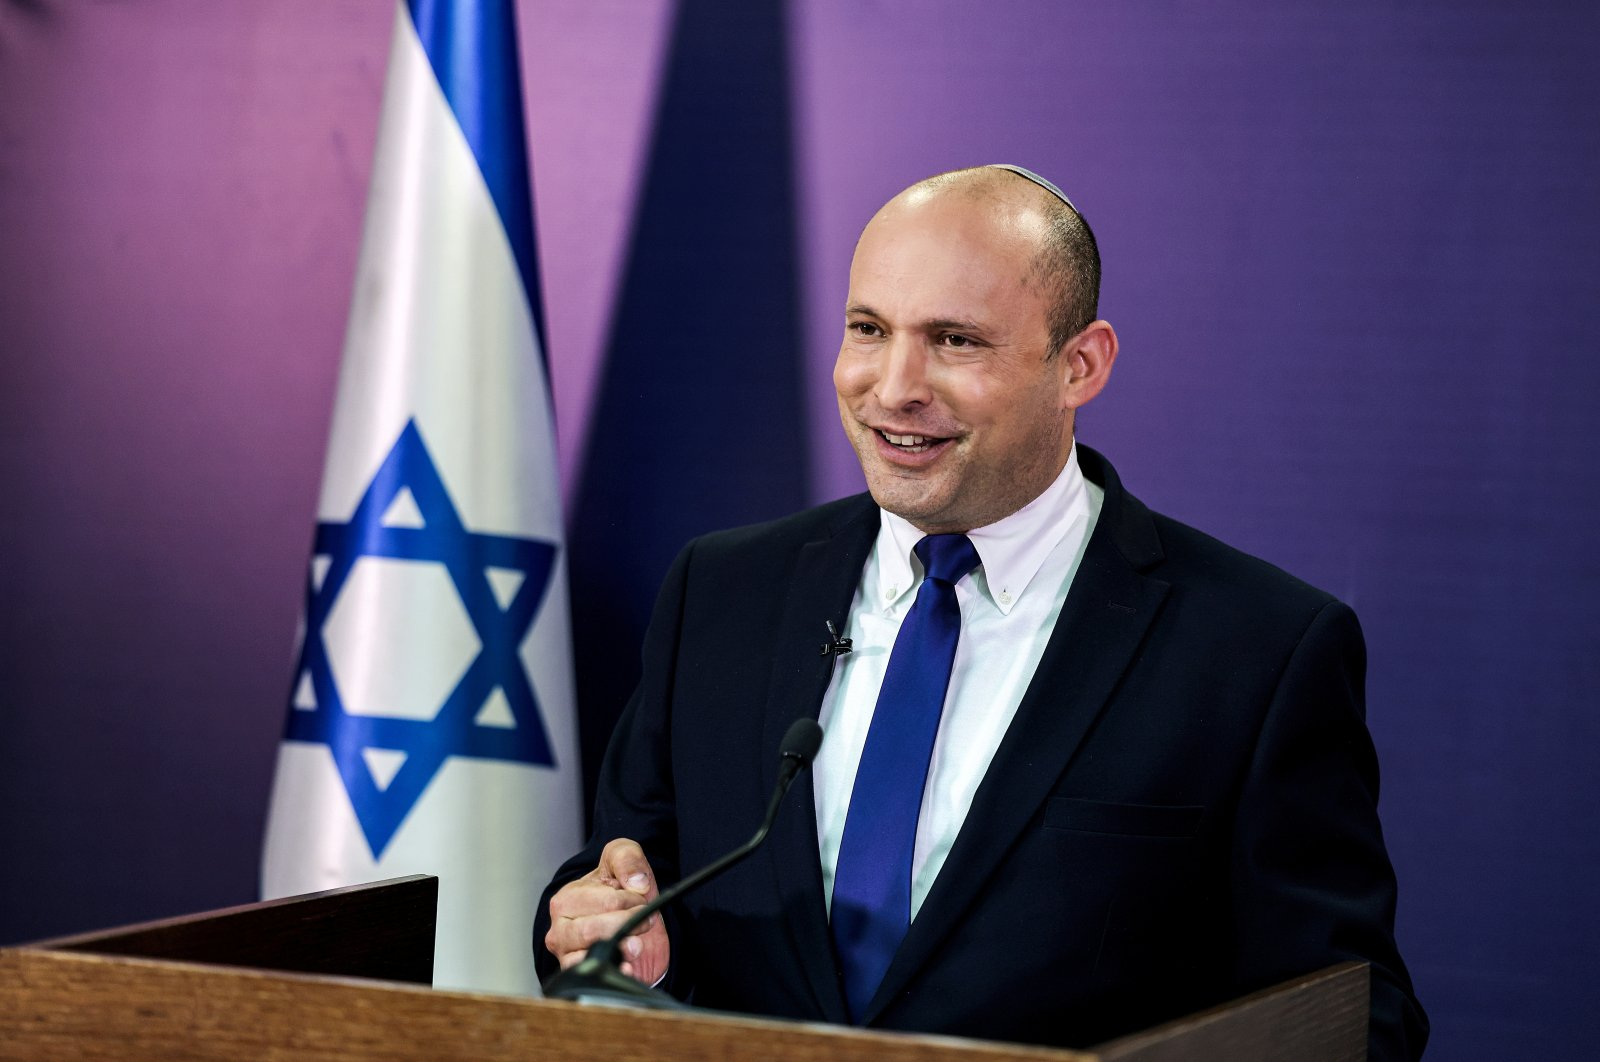 Naftali Bennett, Israeli Parliament member from the Yamina party, gives a statement at parliament, West Jerusalem, Israel, June 6, 2021. (Reuters Photo)